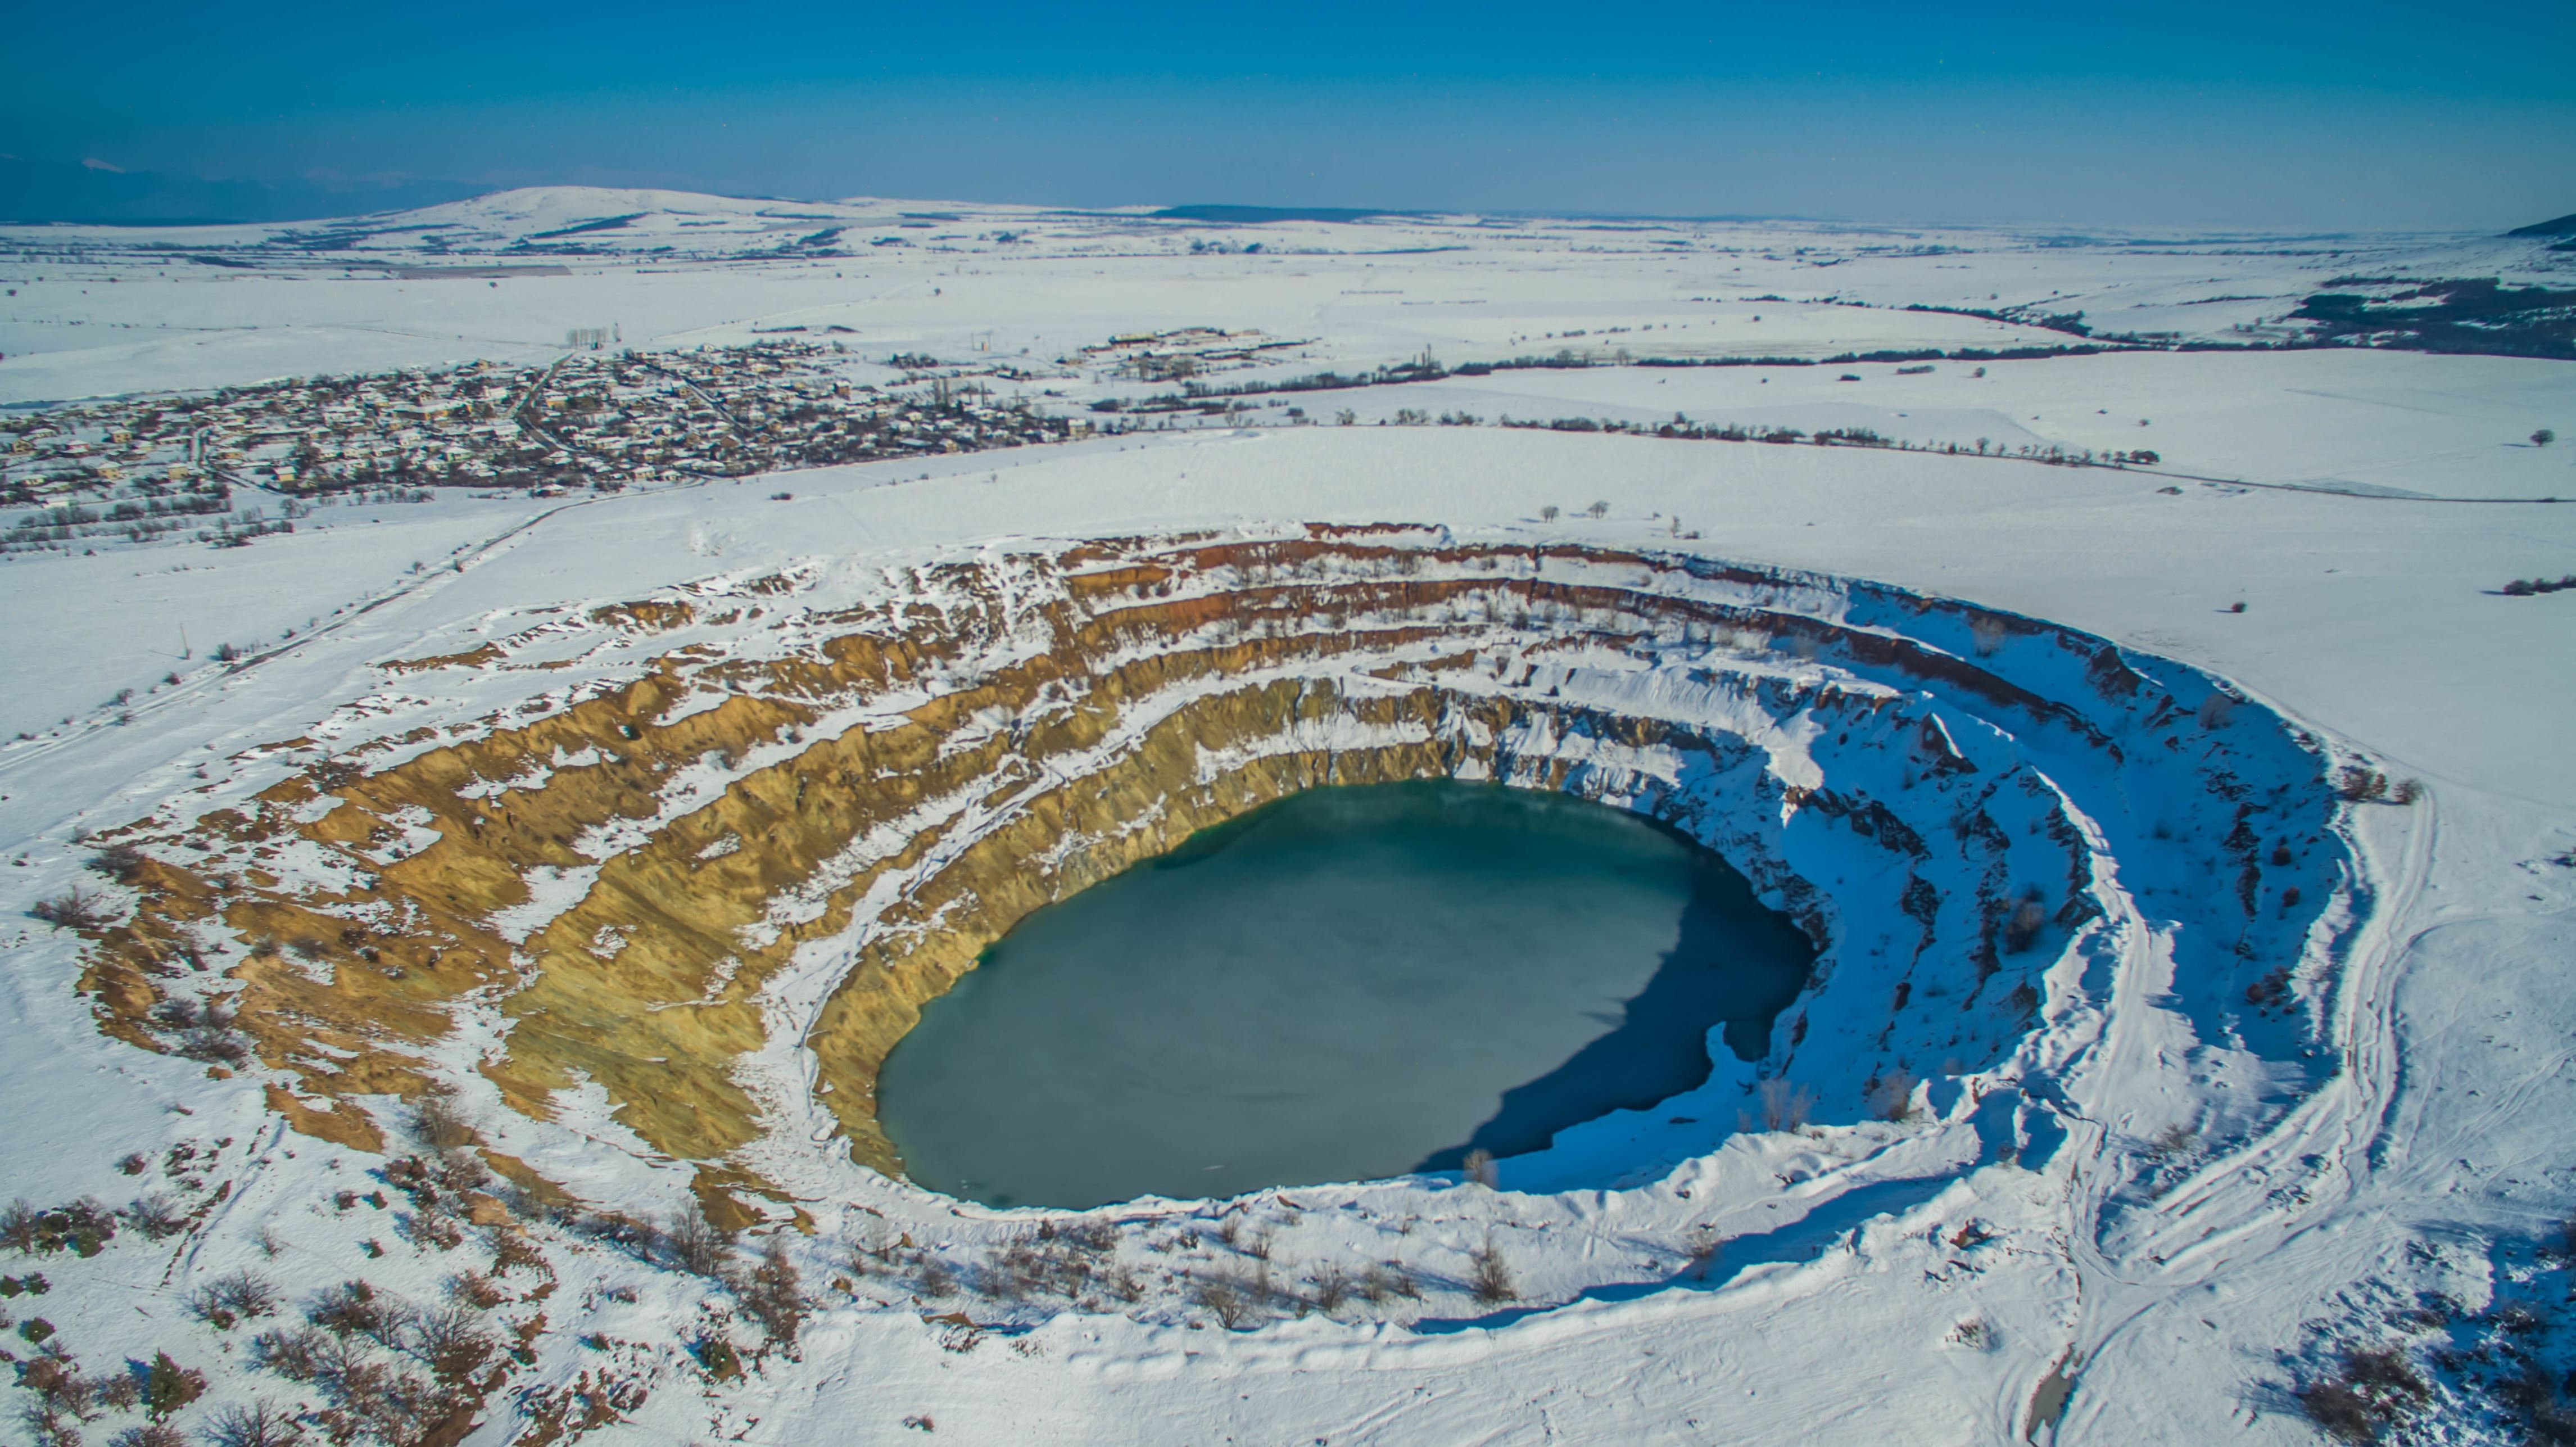 Slide 17 of 73: A drone view of snow covered and for the first time frozen abandoned copper mine located almost in the village of Tsar Asen (King Asen) at an elevation of about 300 m above sea levelel some 100 kms east of the Bulgaian capital Sofia, Wednesday, February, 03, 2016. Local residents near the mine and many supporters of former communist regime anounse it as a tourist attraction destination and many people mostly photographers visit it to photograph the unique green water on the bottom of the mine. Just near the mine a infield is also located. Photo by: Petar Petrov/Impact Press Group/NurPhoto (Photo by NurPhoto/NurPhoto via Getty Images)